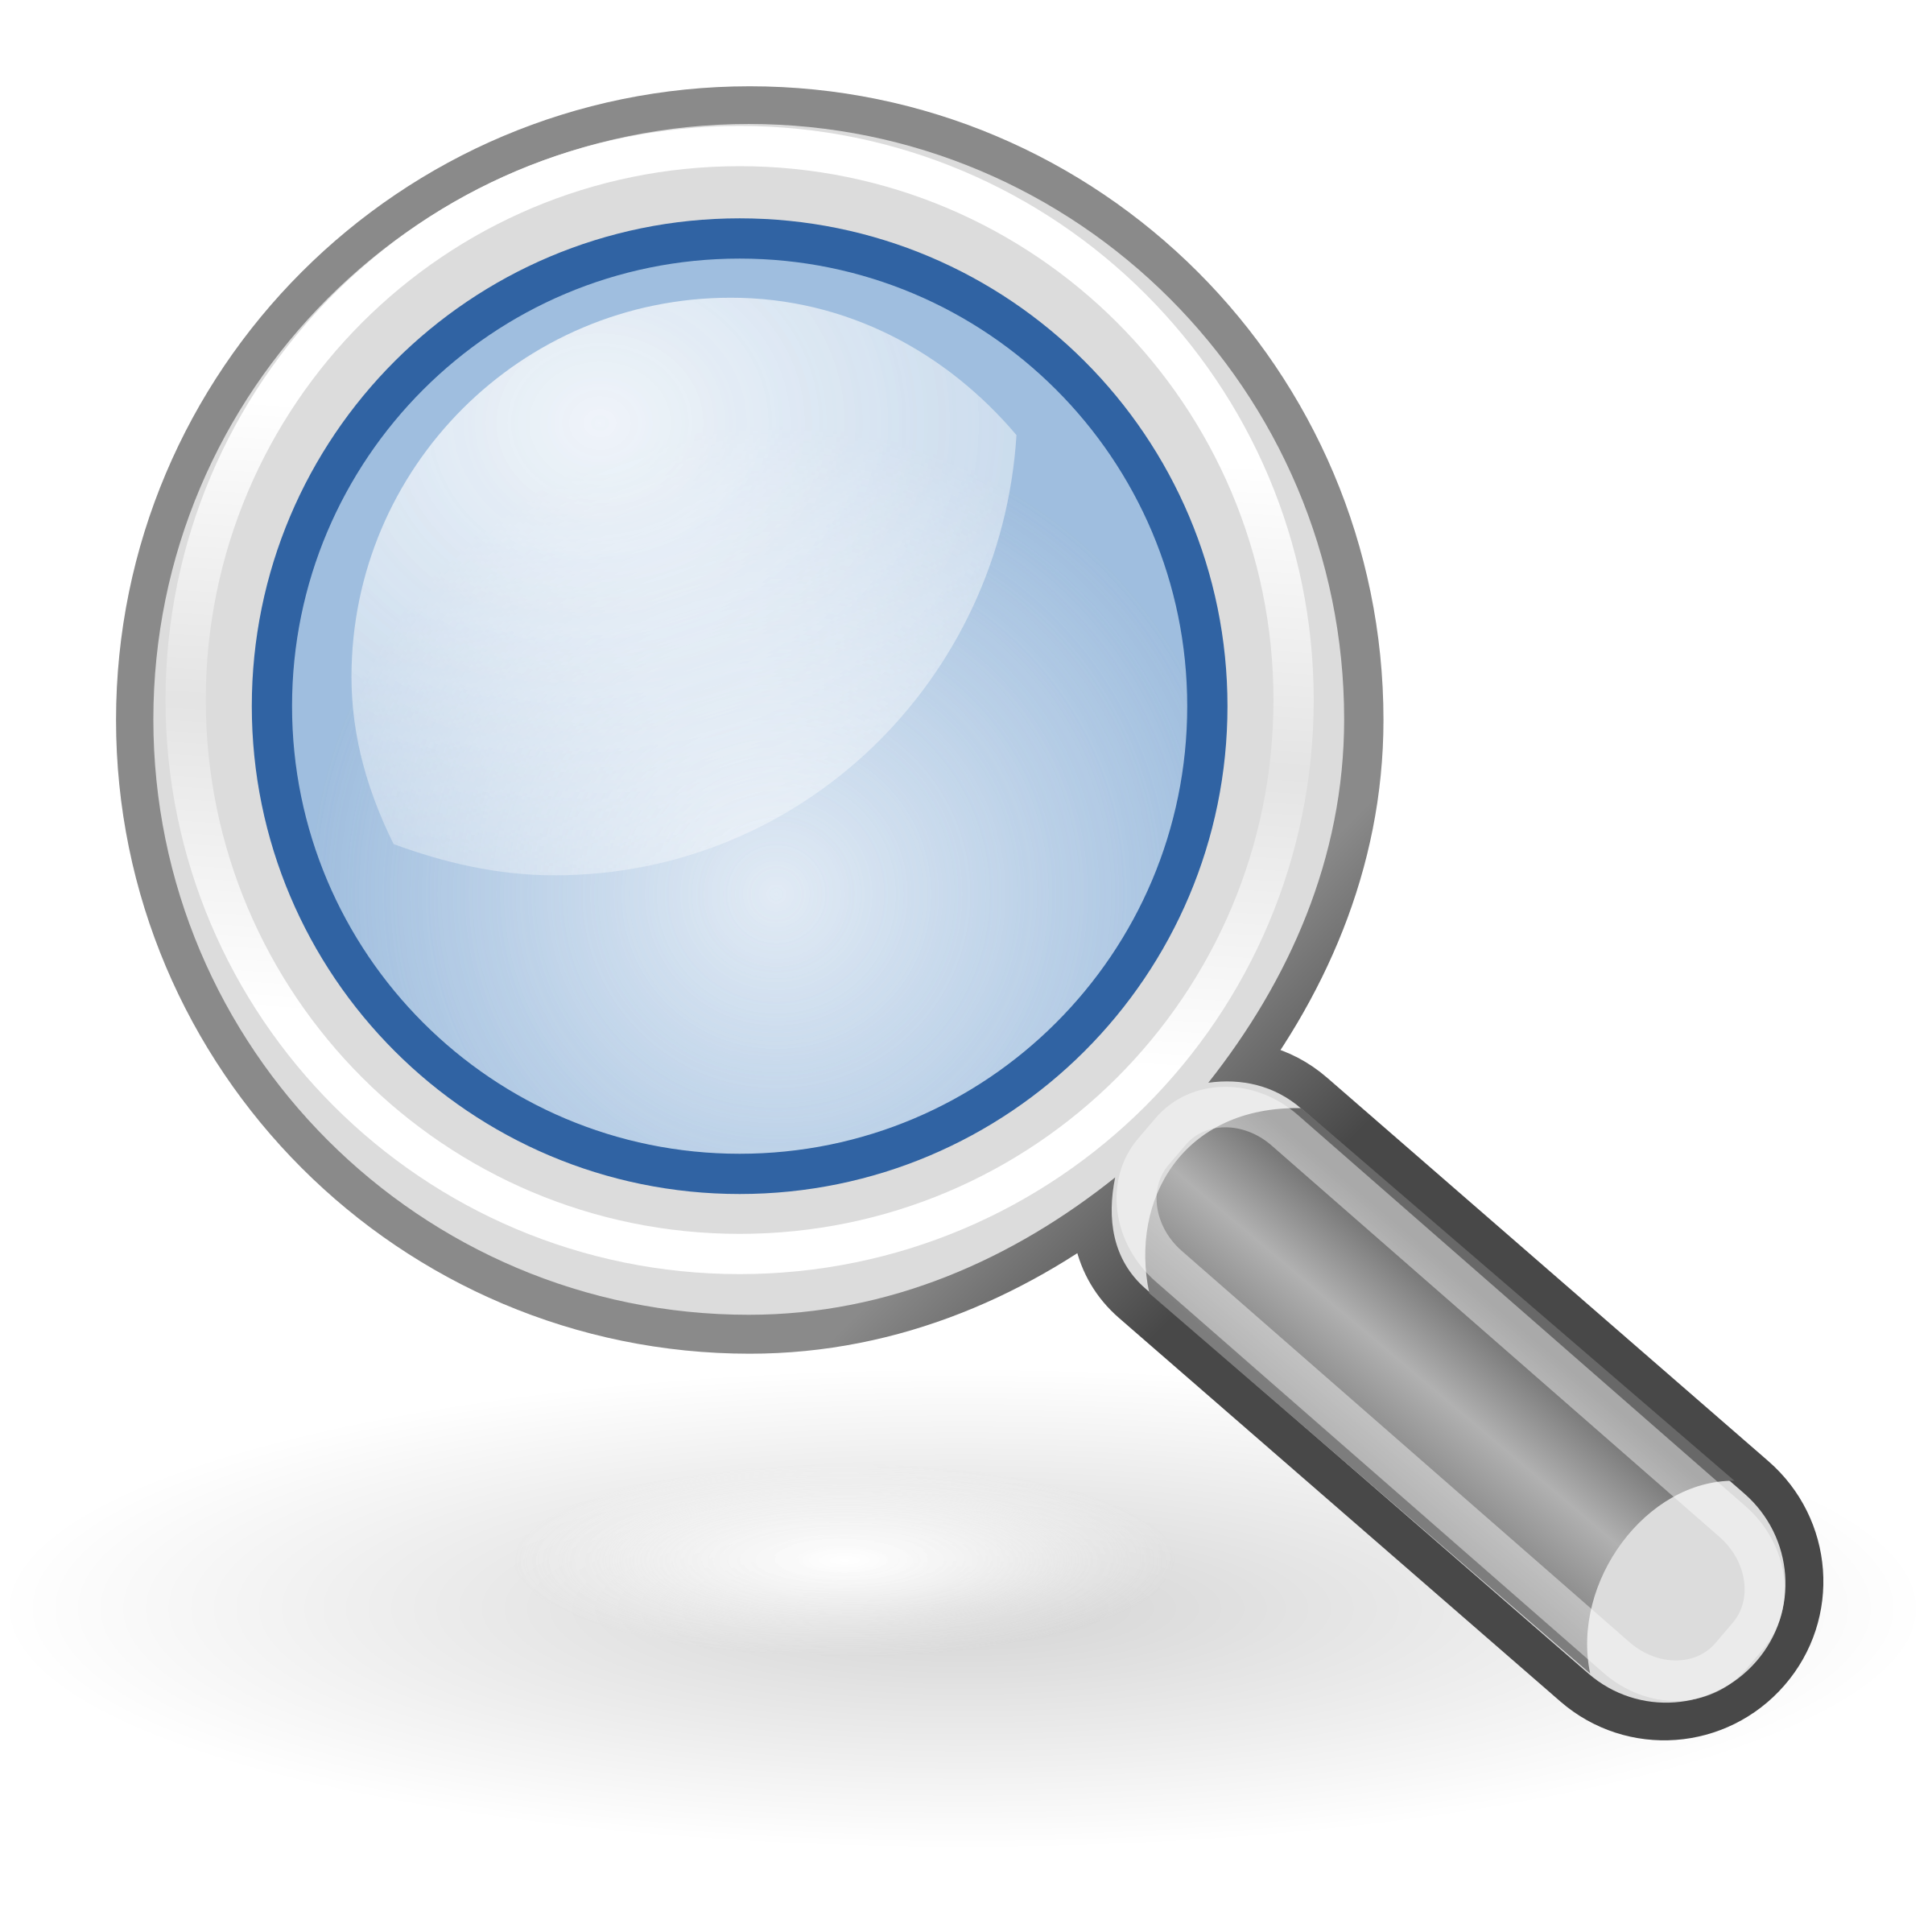 Folder clipart file system. Research clip art free